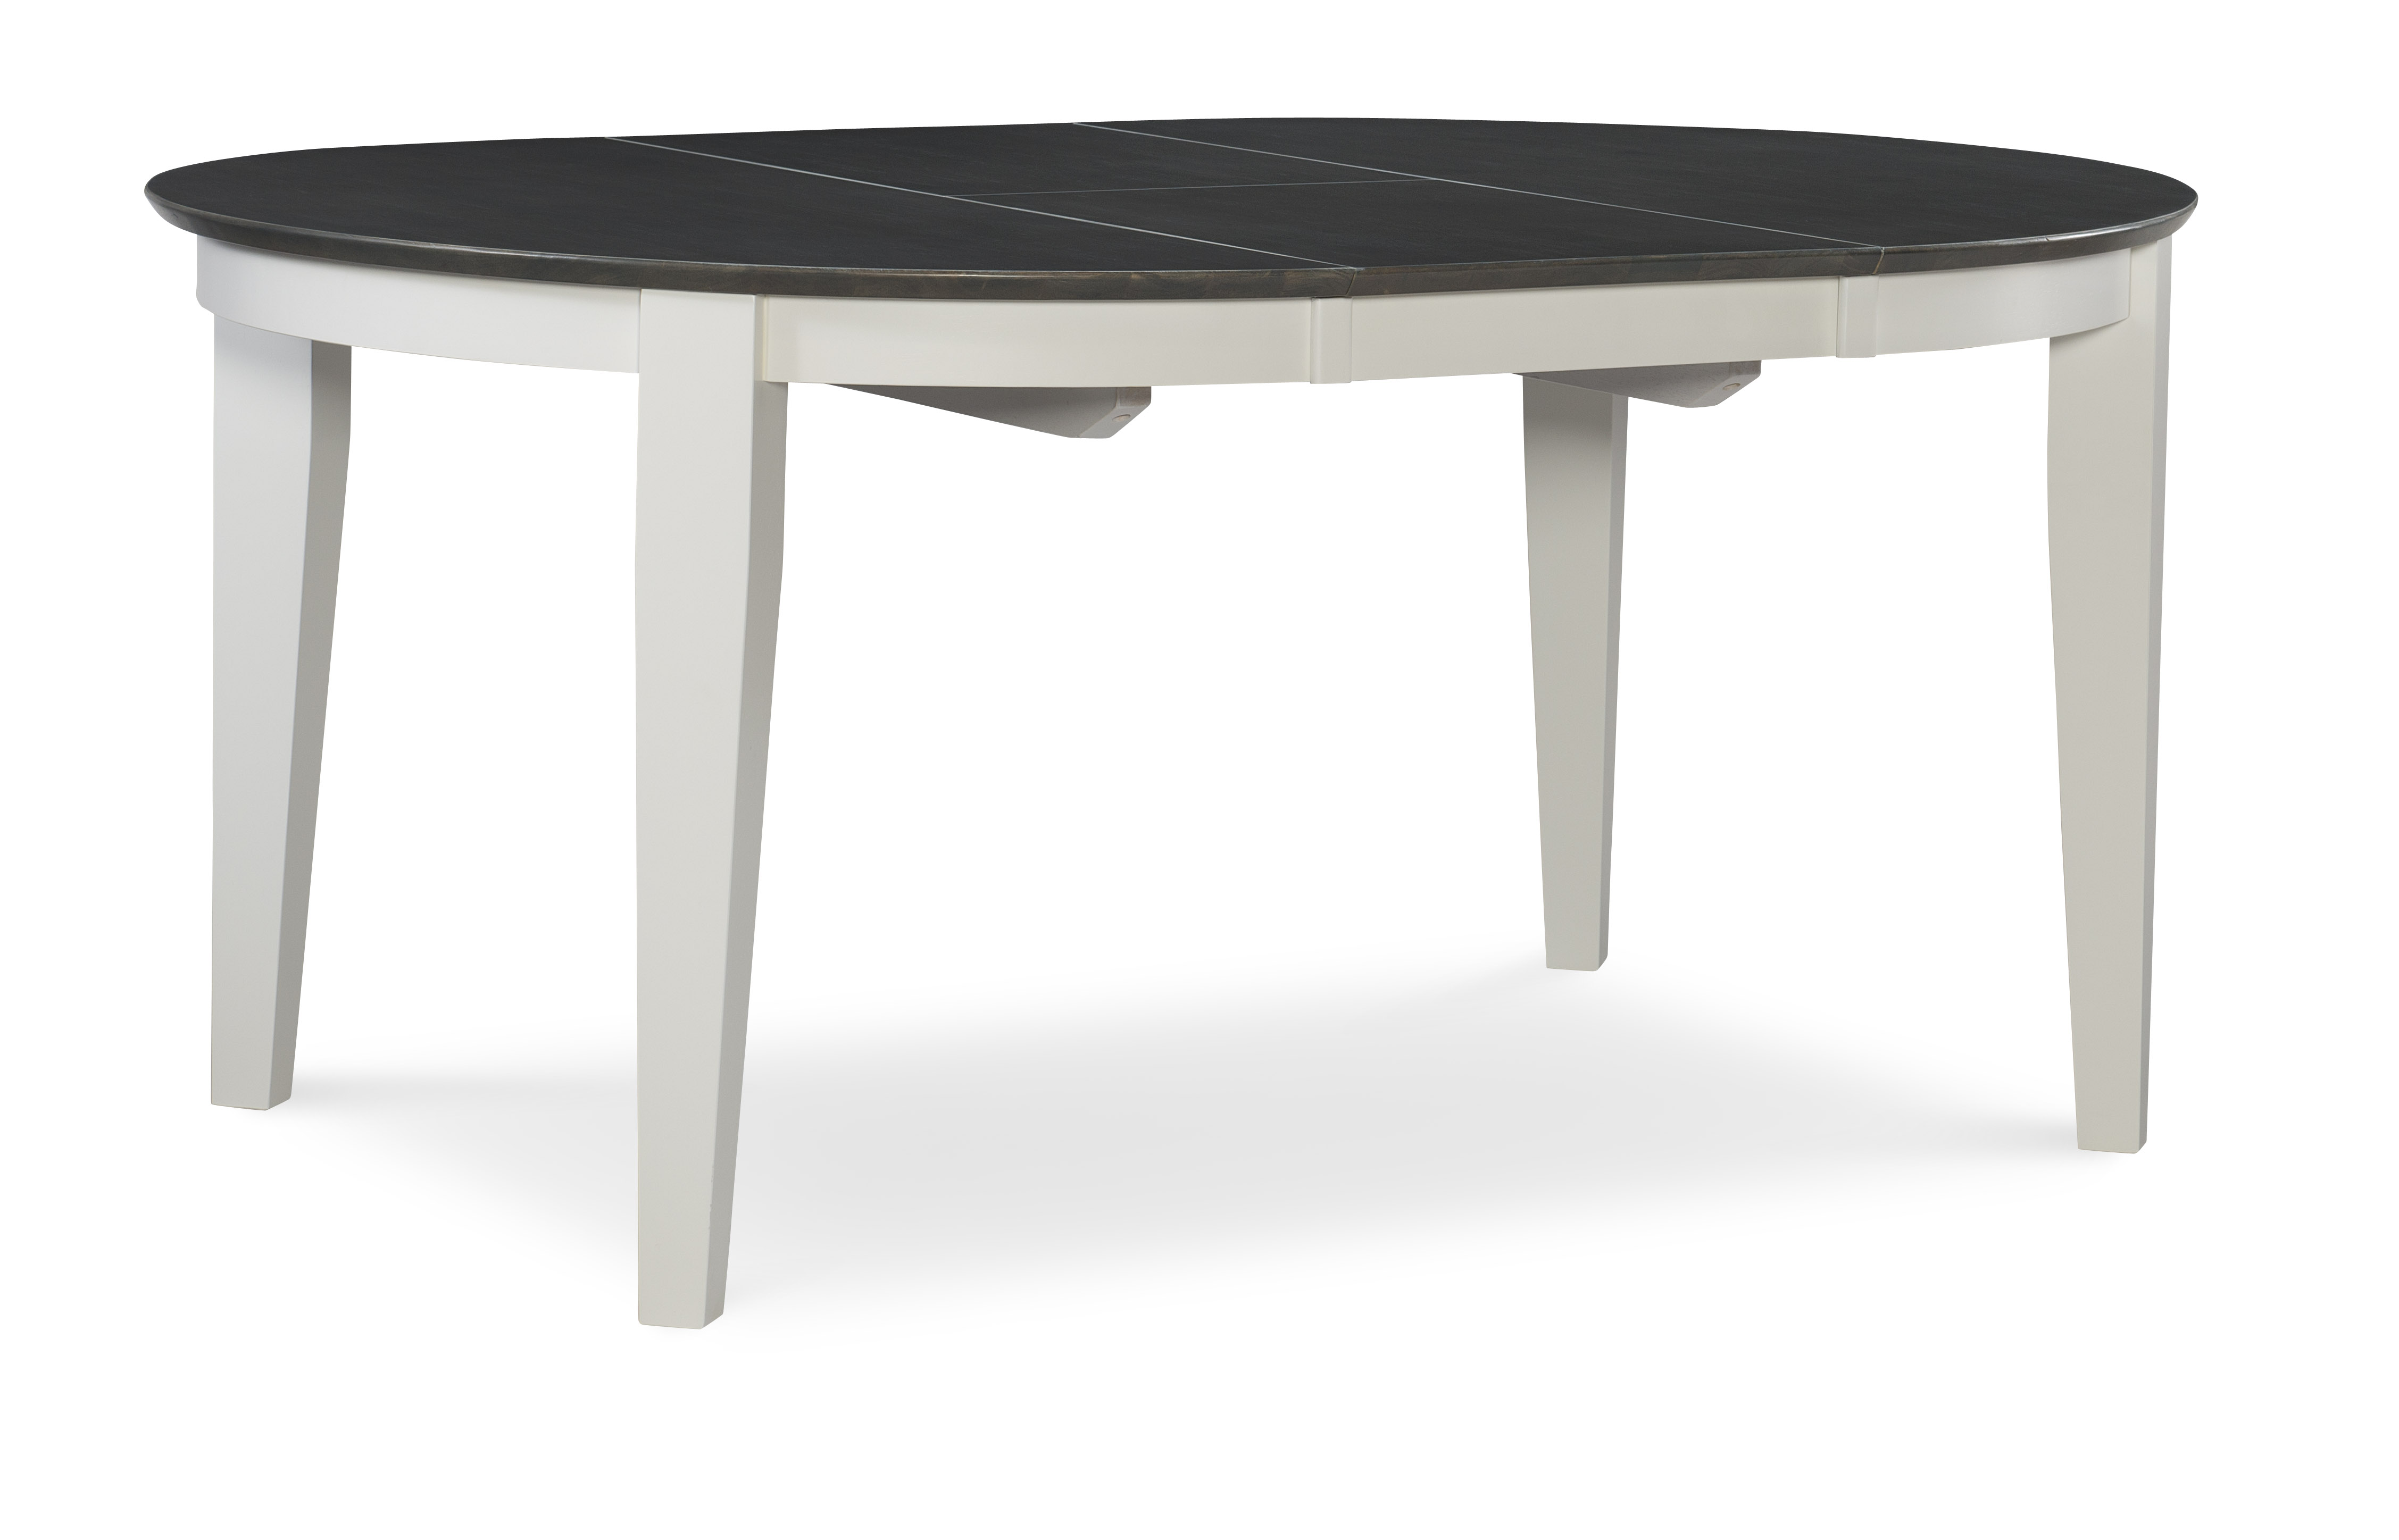 John Thomas Cosmopolitan Oval Butterfly Extension Table